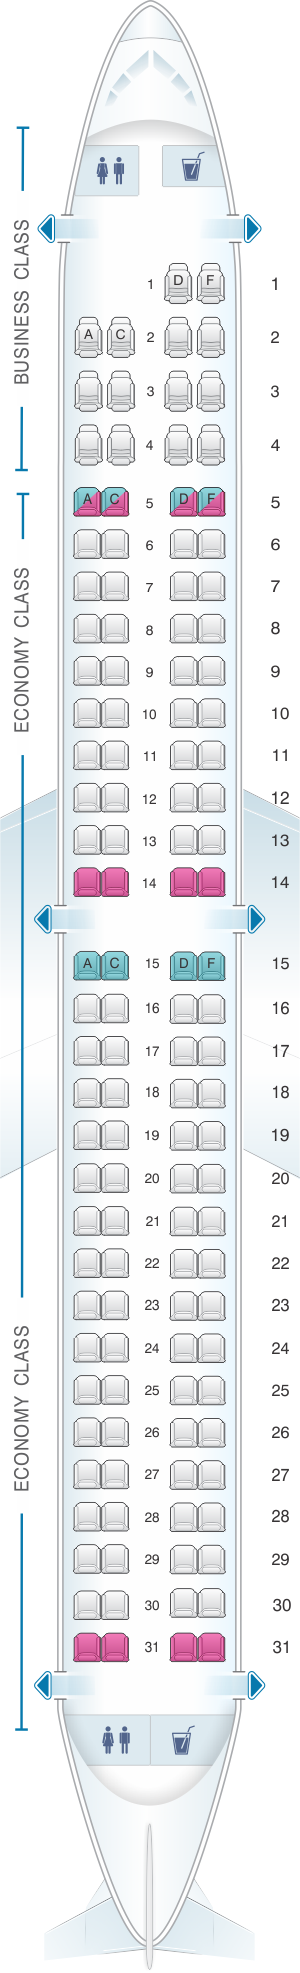 Seat map for Air Europa Embraer 195